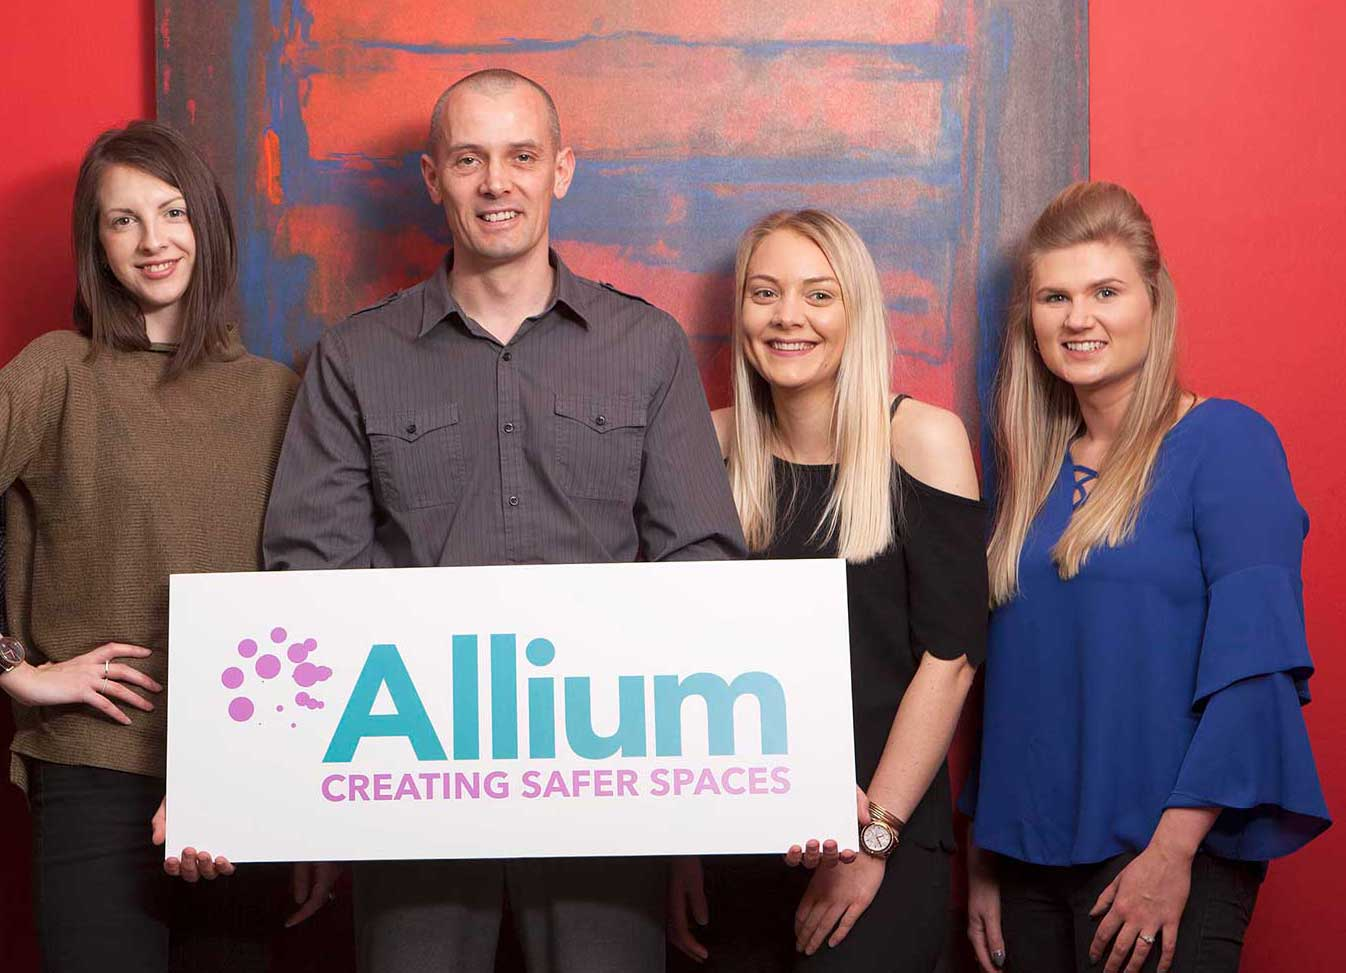 Members of the Allium team who work in Cornwall, Bristol, and Southampton